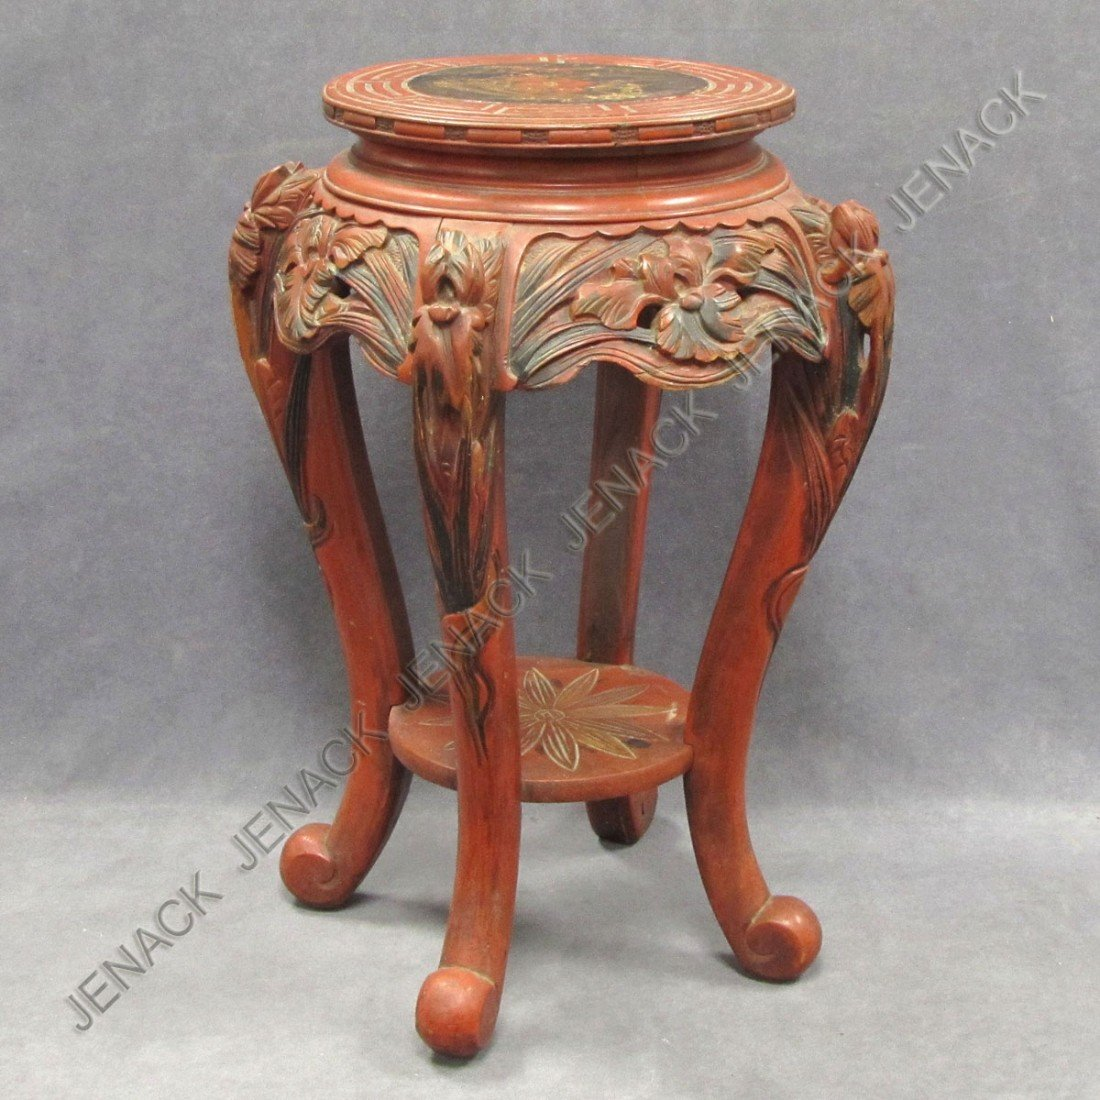 84: JAPANESE CARVED AND LACQUERED STAND